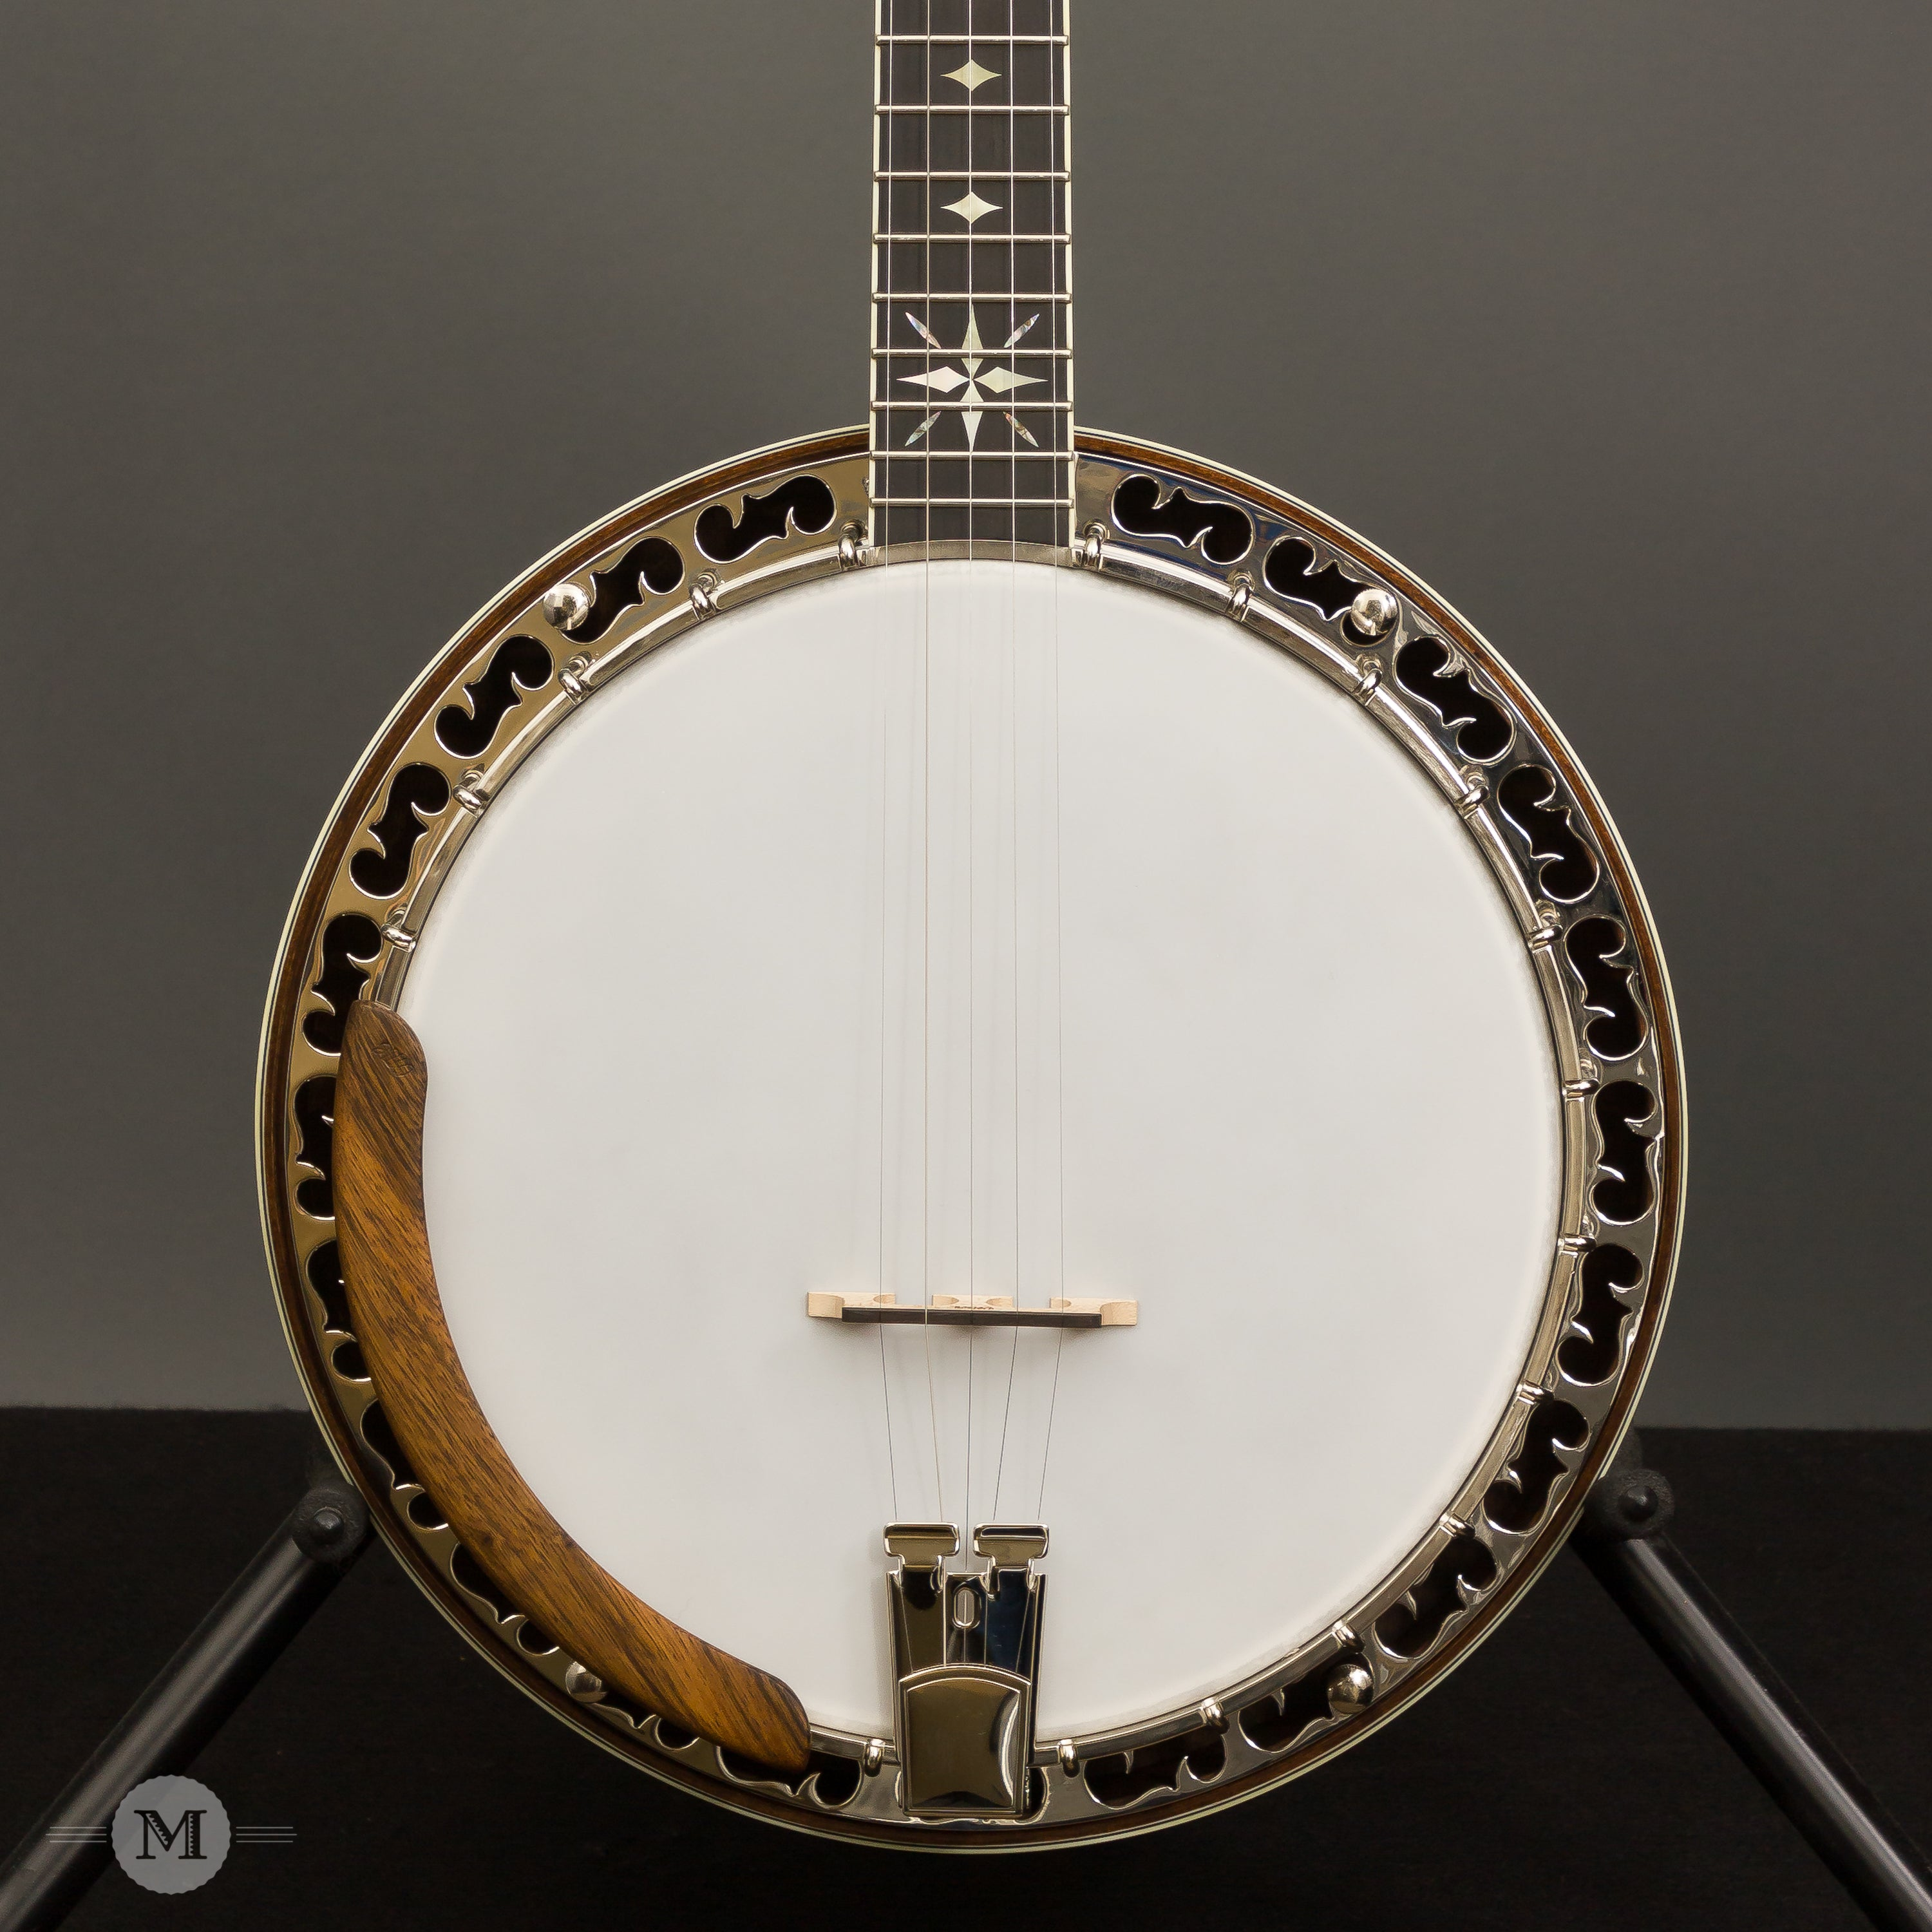 OME Banjos - Oracle Professional Series Bluegrass Banjo